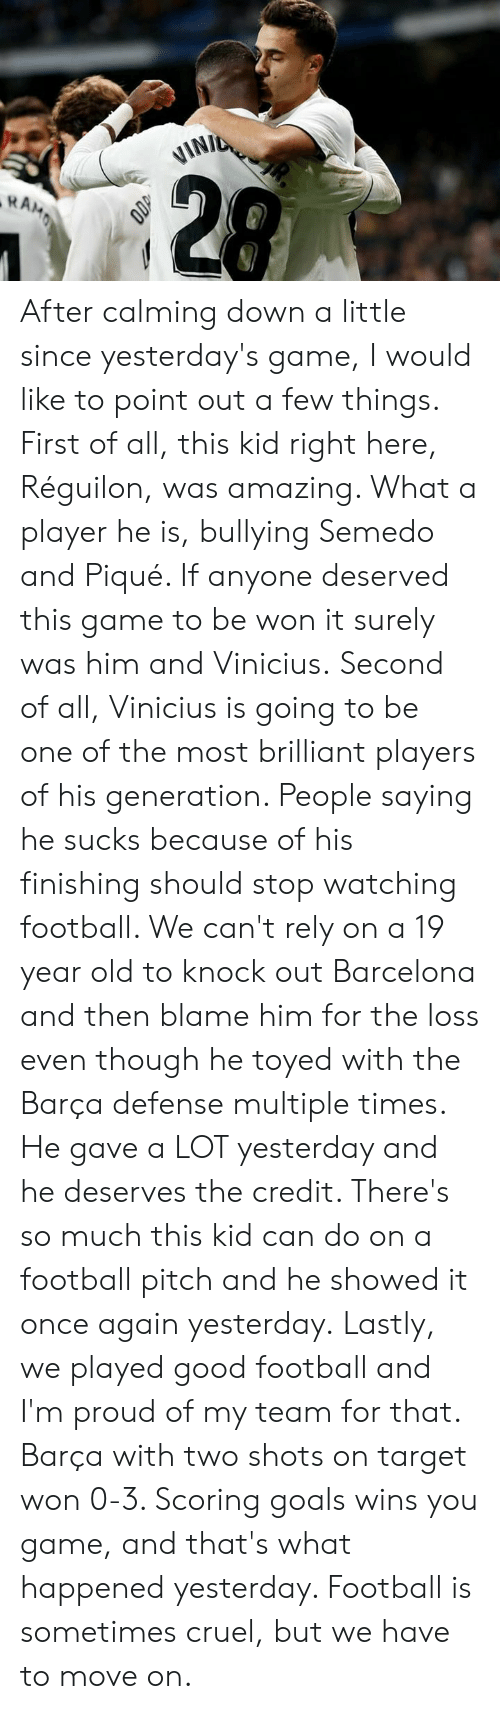 Barcelona, Football, and Goals: After calming down a little since yesterday's game, I would like to point out a few things.  First of all, this kid right here, Réguilon, was amazing. What a player he is, bullying Semedo and Piqué. If anyone deserved this game to be won it surely was him and Vinicius.  Second of all, Vinicius is going to be one of the most brilliant players of his generation. People saying he sucks because of his finishing should stop watching football. We can't rely on a 19 year old to knock out Barcelona and then blame him for the loss even though he toyed with the Barça defense multiple times. He gave a LOT yesterday and he deserves the credit. There's so much this kid can do on a football pitch and he showed it once again yesterday.  Lastly, we played good football and I'm proud of my team for that. Barça with two shots on target won 0-3. Scoring goals wins you game, and that's what happened yesterday. Football is sometimes cruel, but we have to move on.